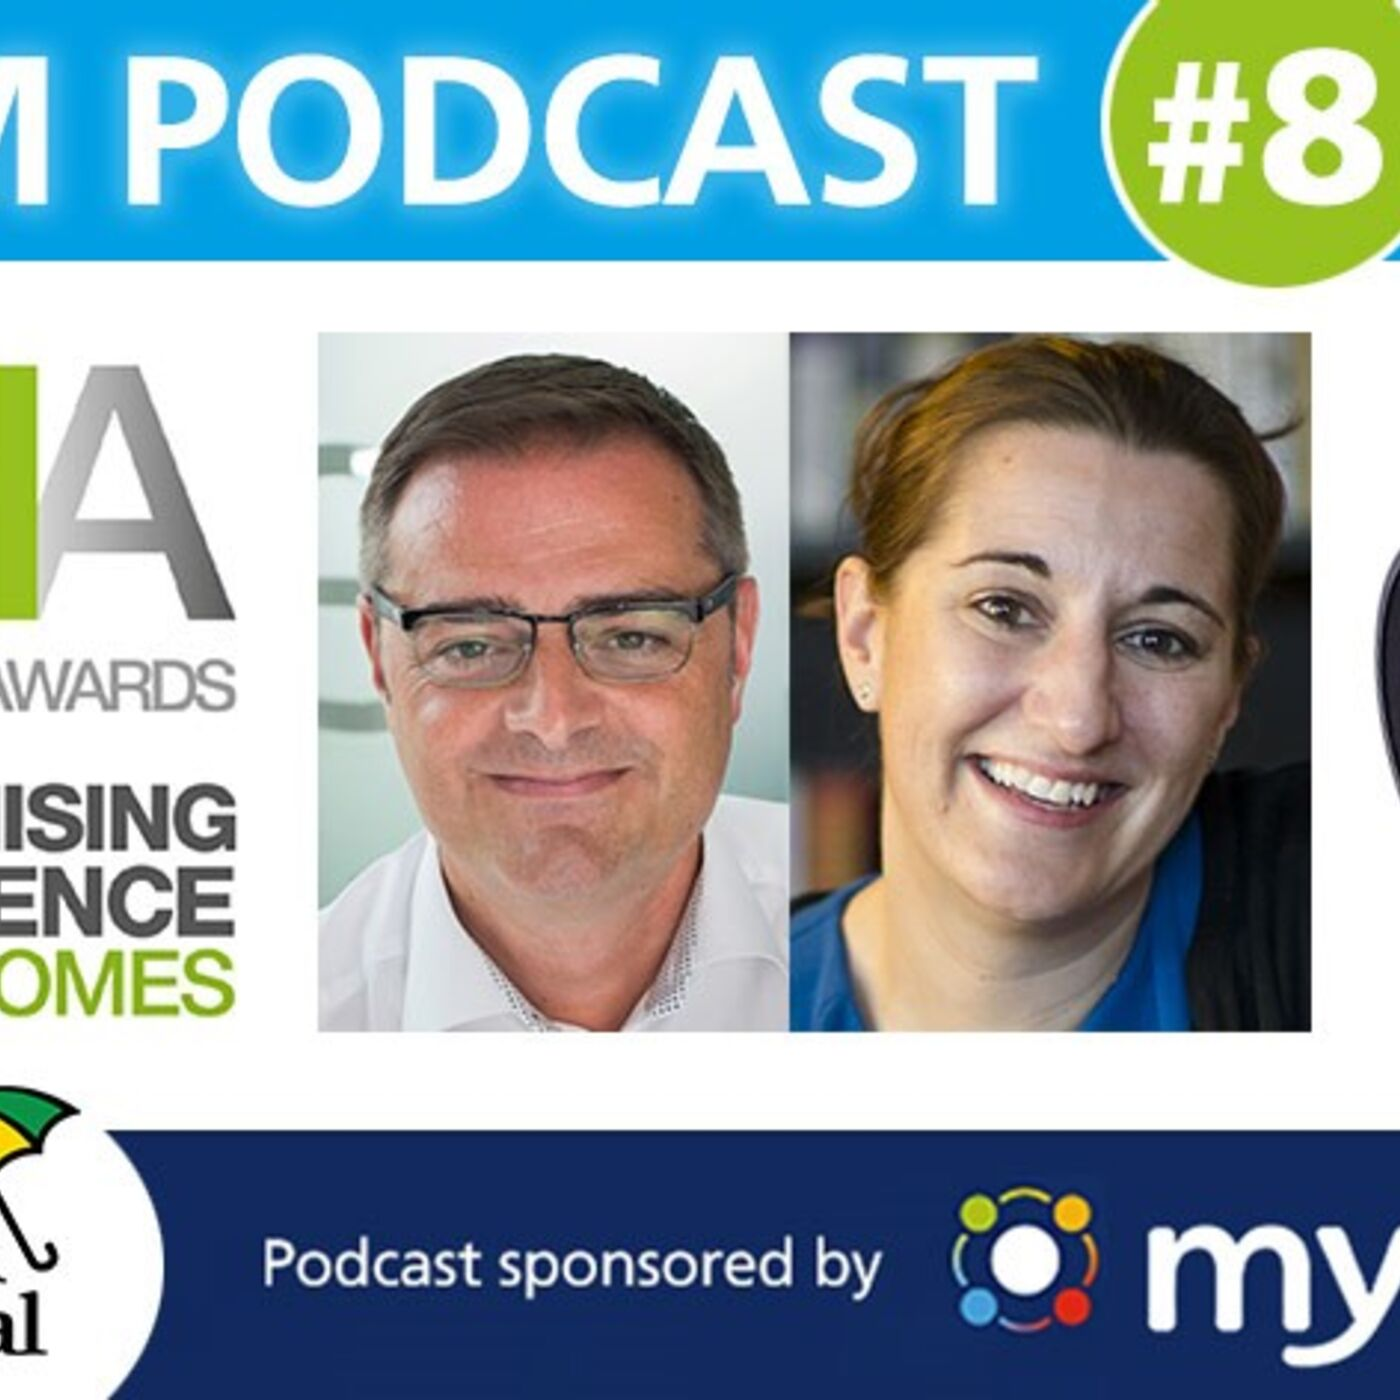 Care Home Awards podcast special from Care Home Management magazine